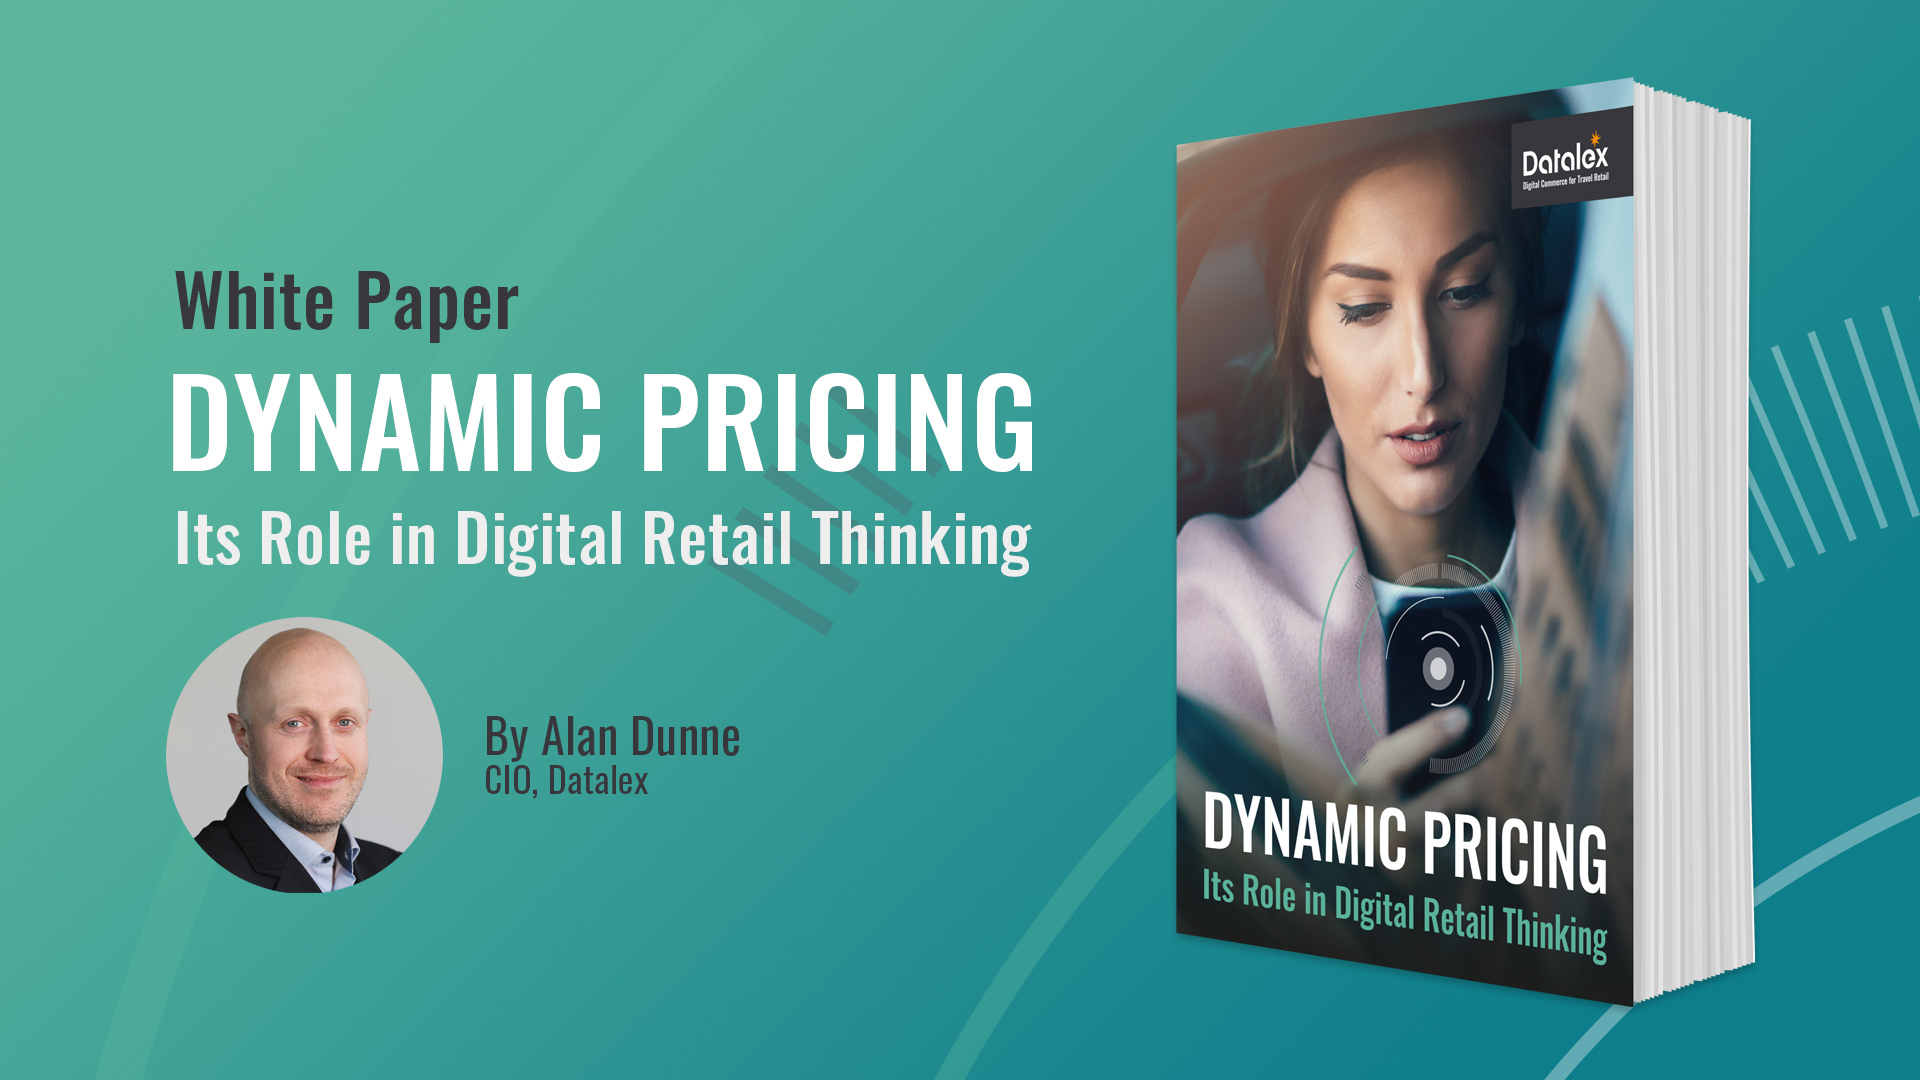 Dynamic Pricing: Its Role in Digital Retail Thinking